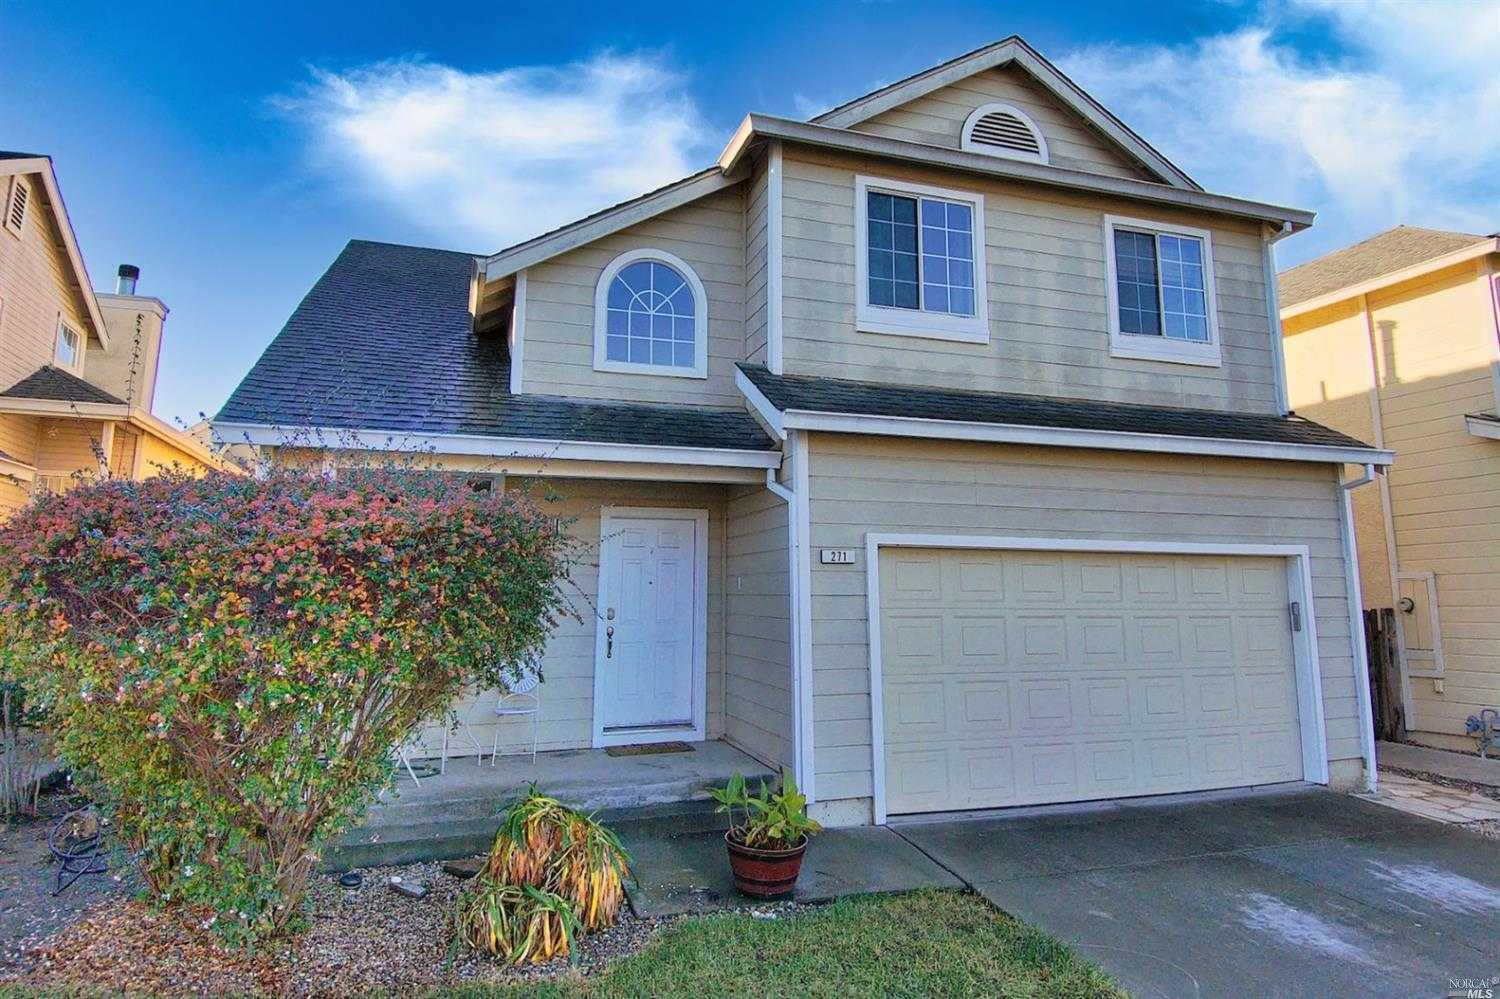 $475,000 - 3Br/3Ba -  for Sale in Village The, Suisun City